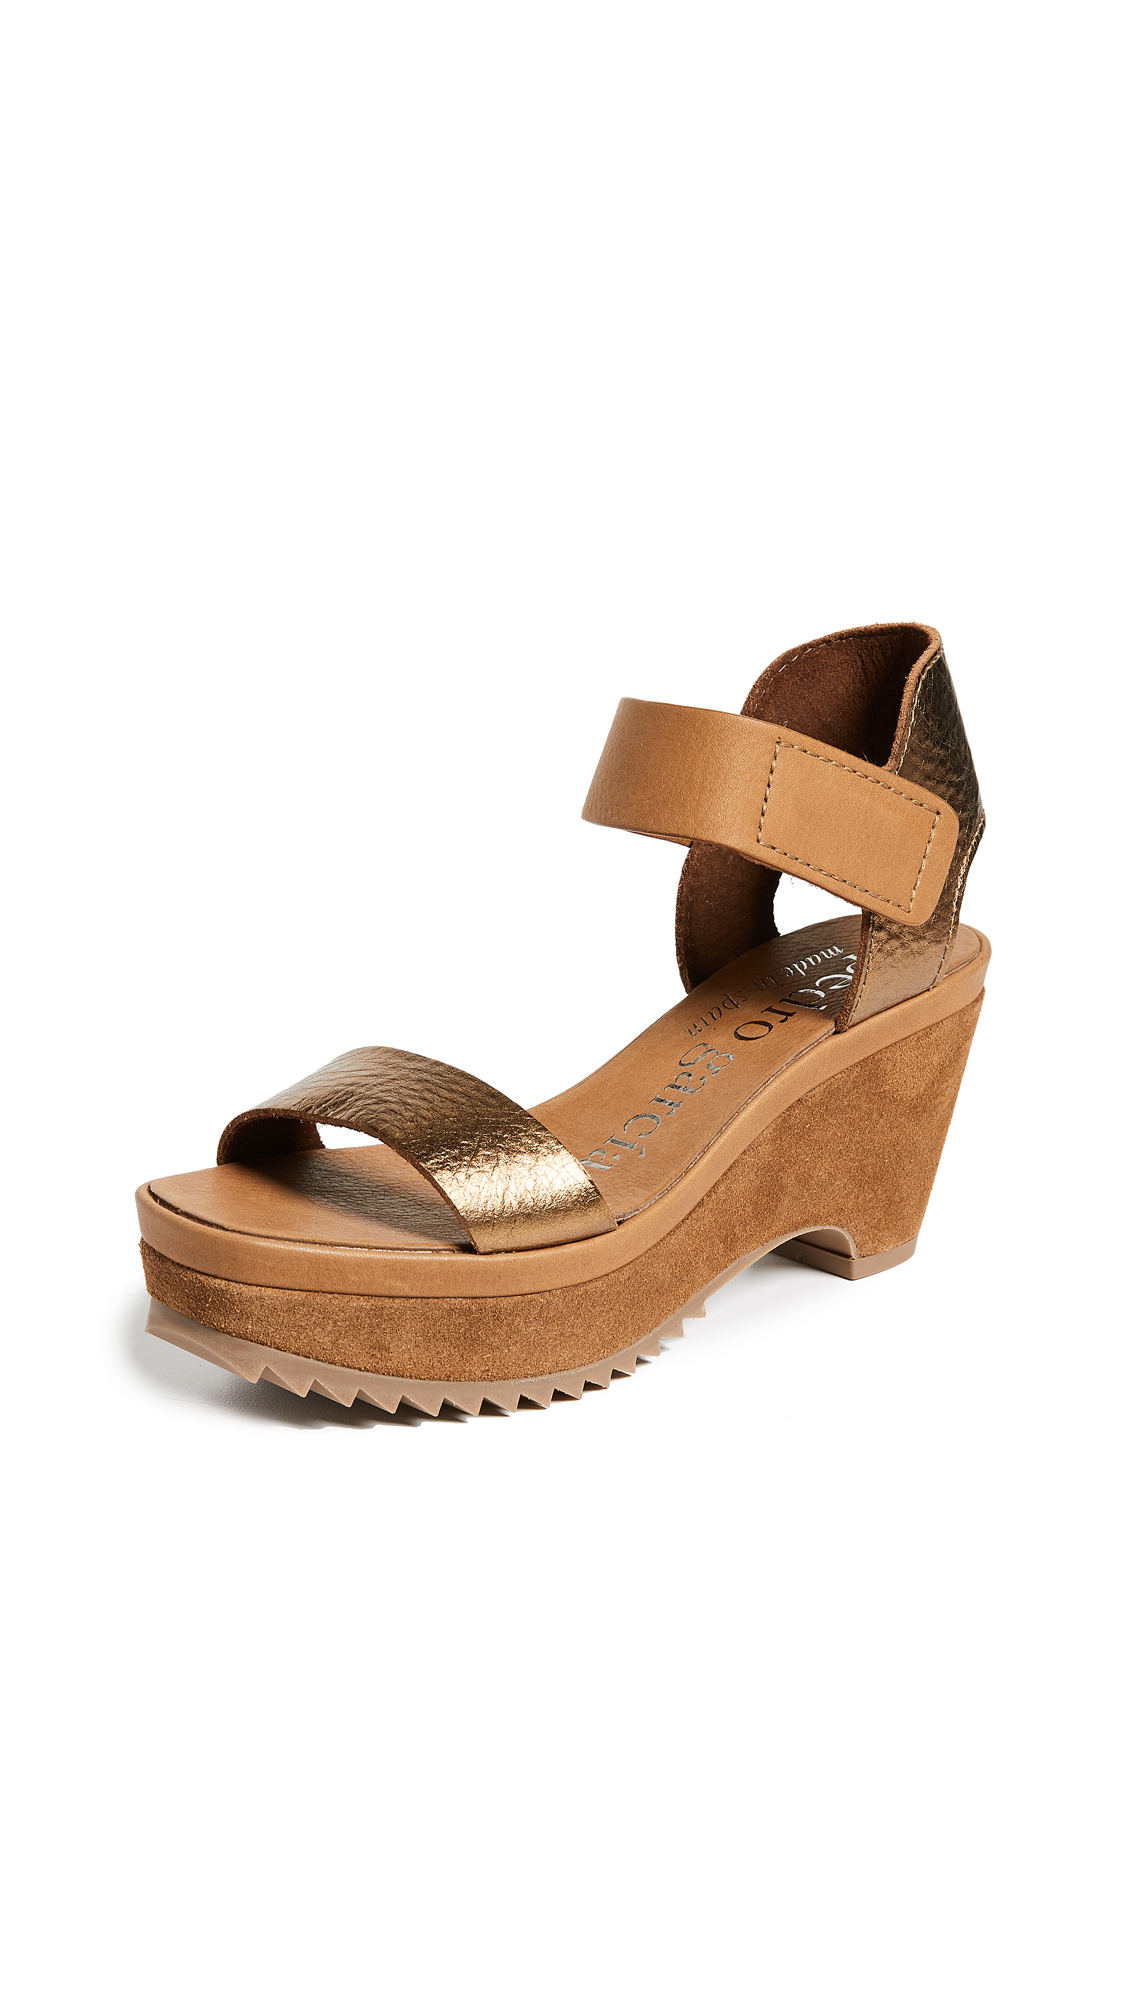 Photo of Pedro Garcia Franses Wedges online shoes sales